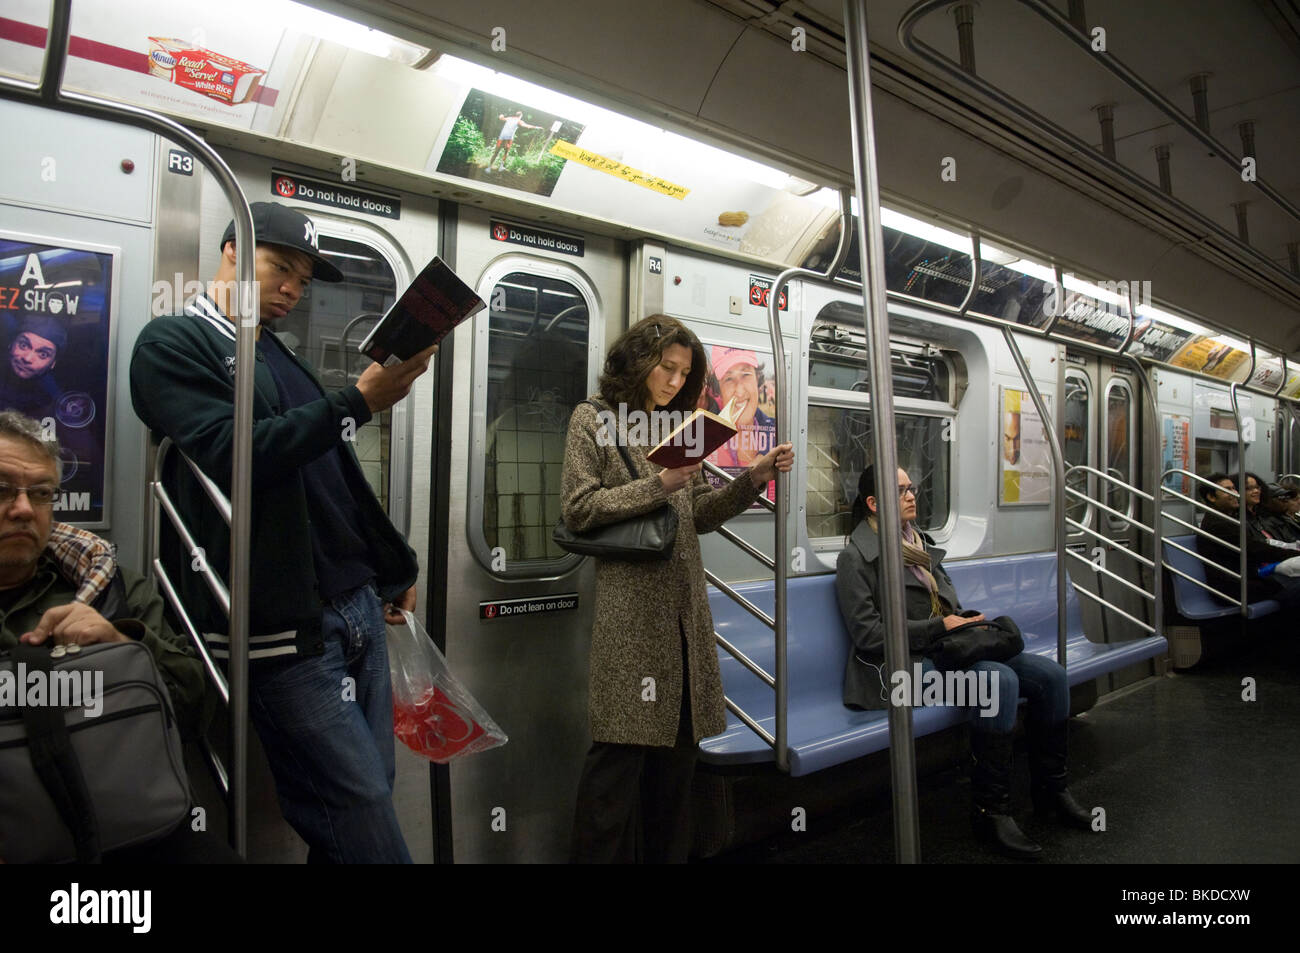 Commuters, standing, reading books on the subway in New York, on Sunday, April 18, 2010. (© Frances Roberts) - Stock Image